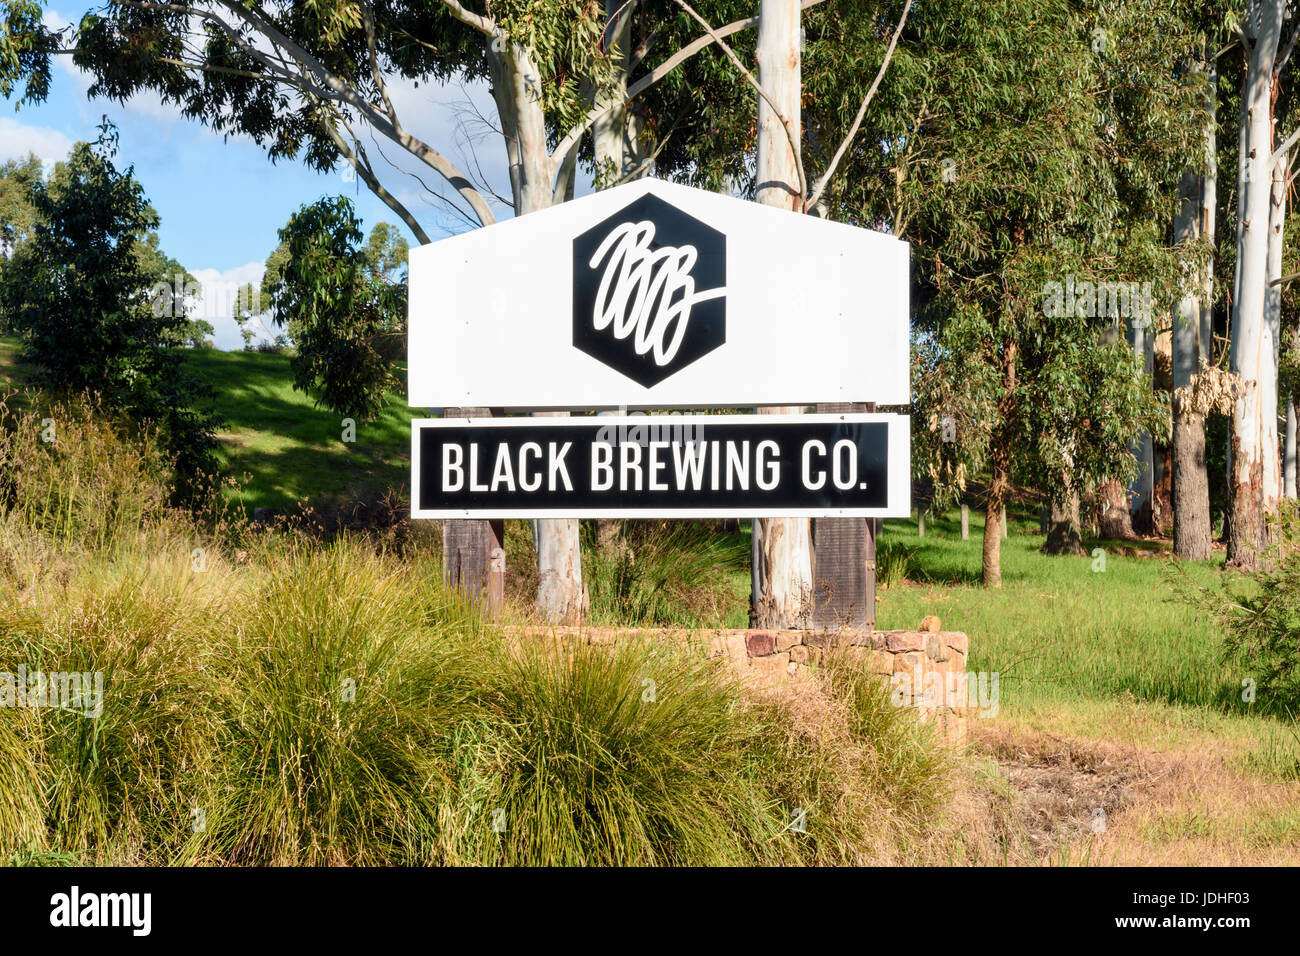 The brewery, Black Brewing Co. sign, on Caves Rd, Wilyabrup, Margaret River, Western Australia - Stock Image